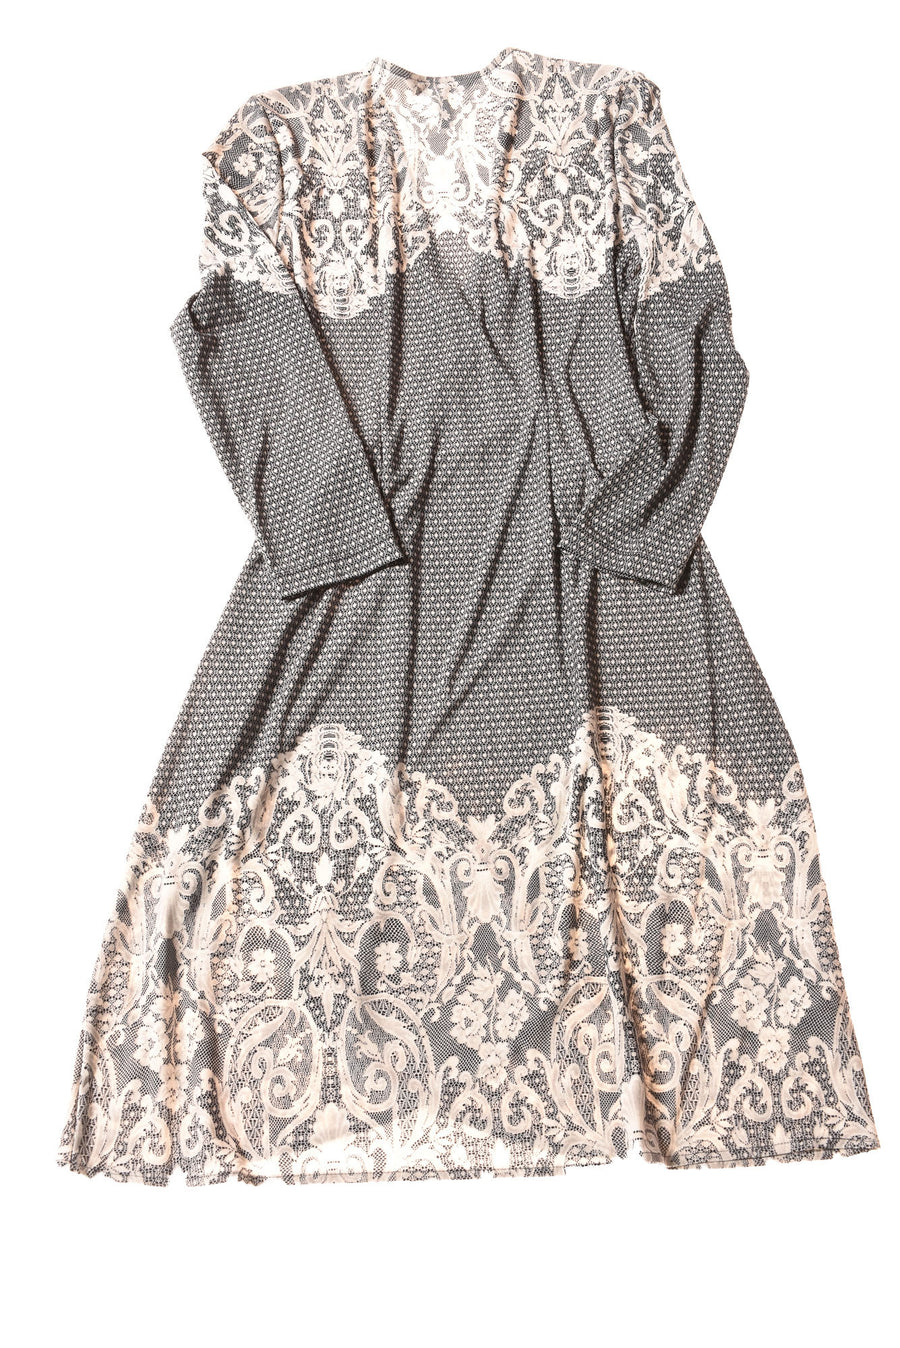 USED BCBG Maxazria Women's Dress Medium Gray / Print